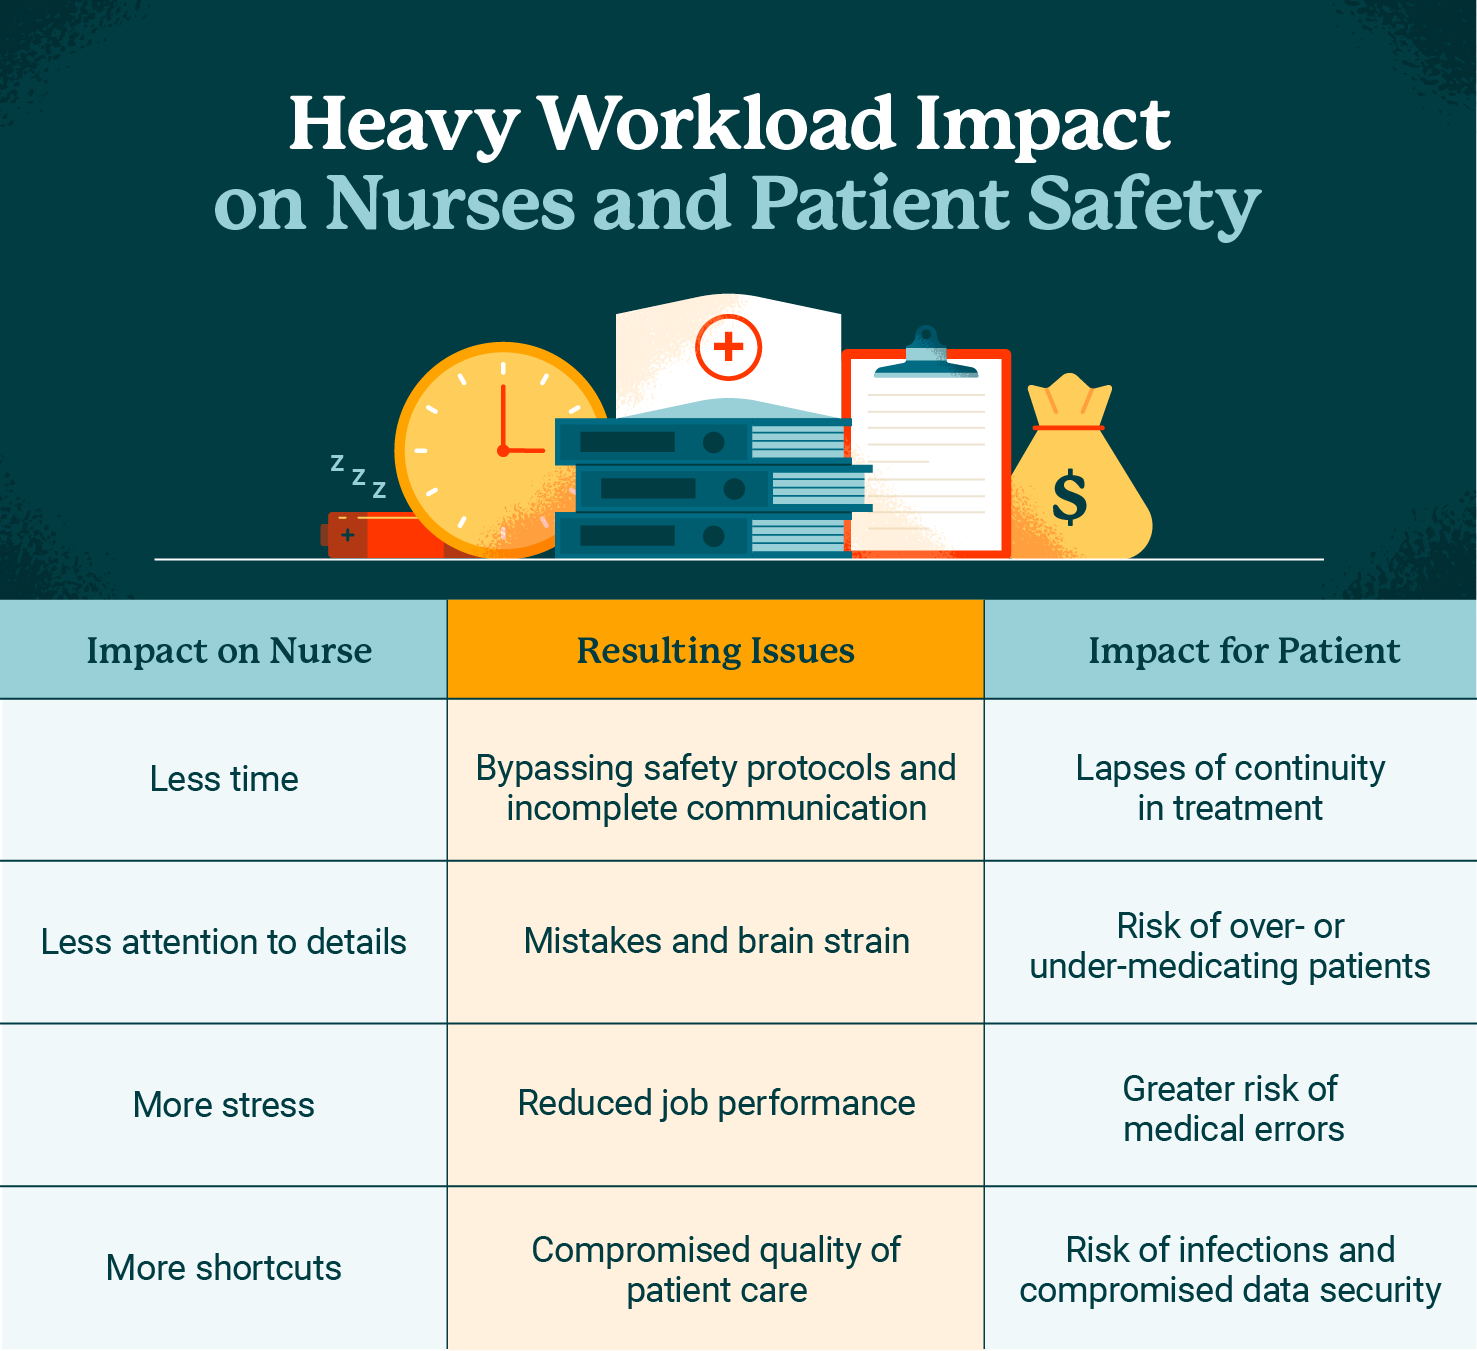 Heavy workload impact on nurses and patient safety graphic